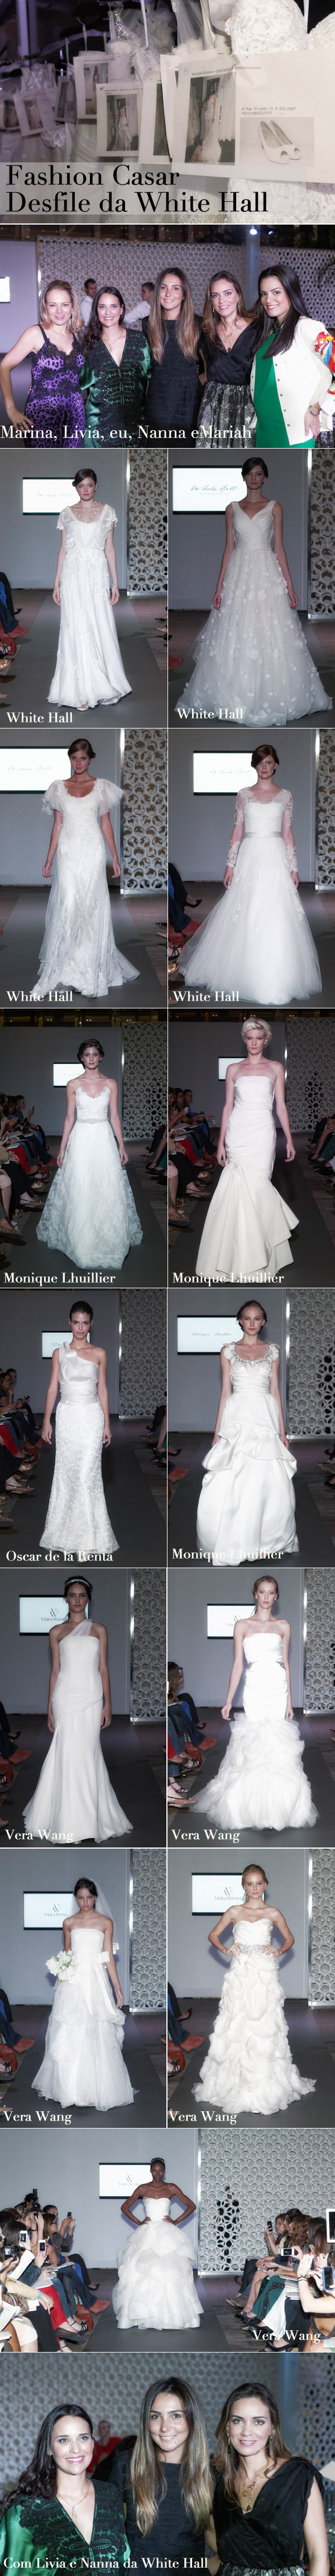 desfile-white-hall-fashion-casar